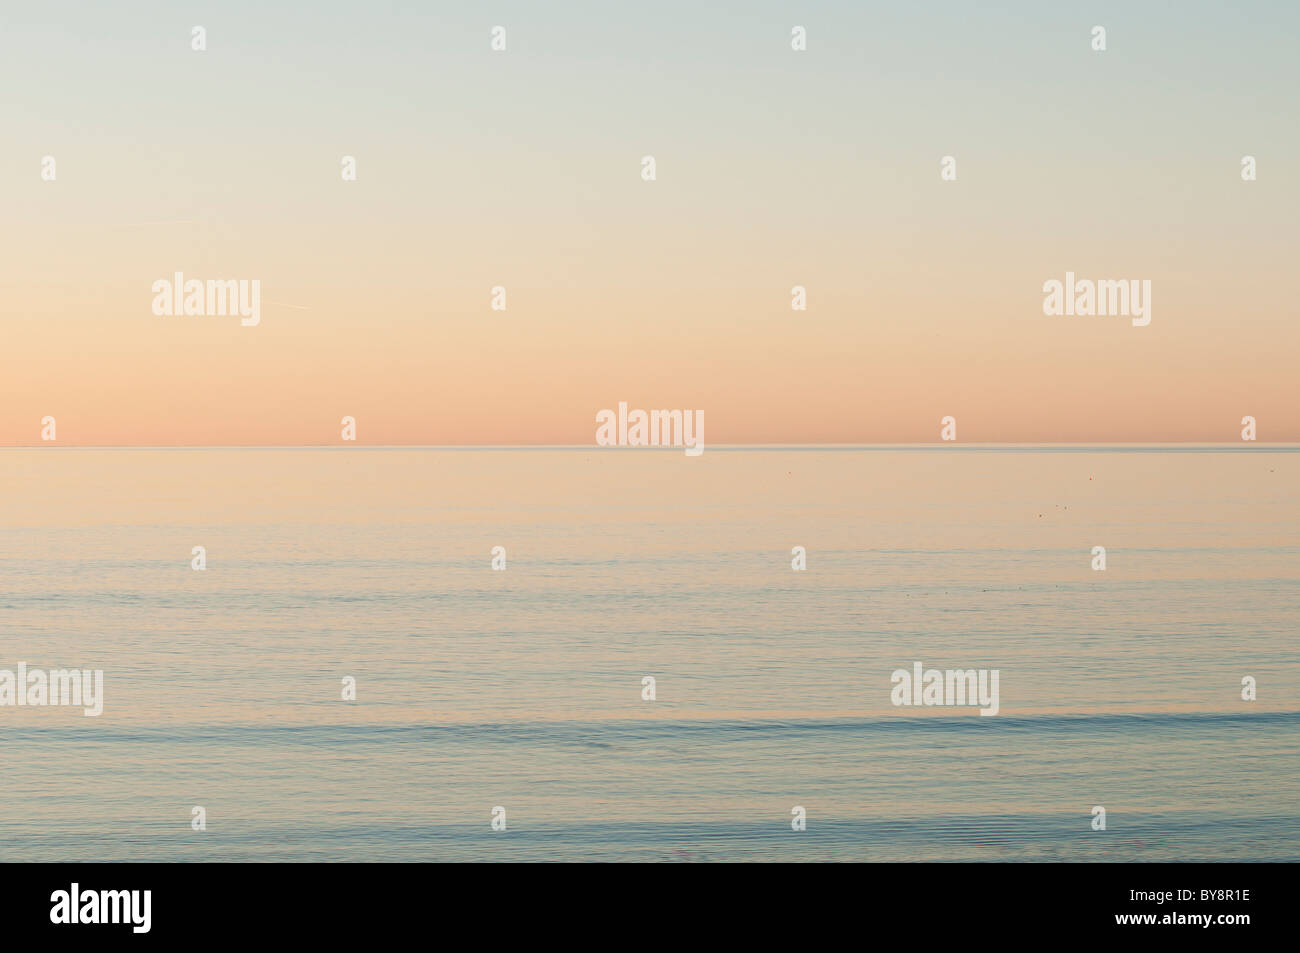 A Flat calm sea at dusk - Cardigan Bay west wales UK - Stock Image